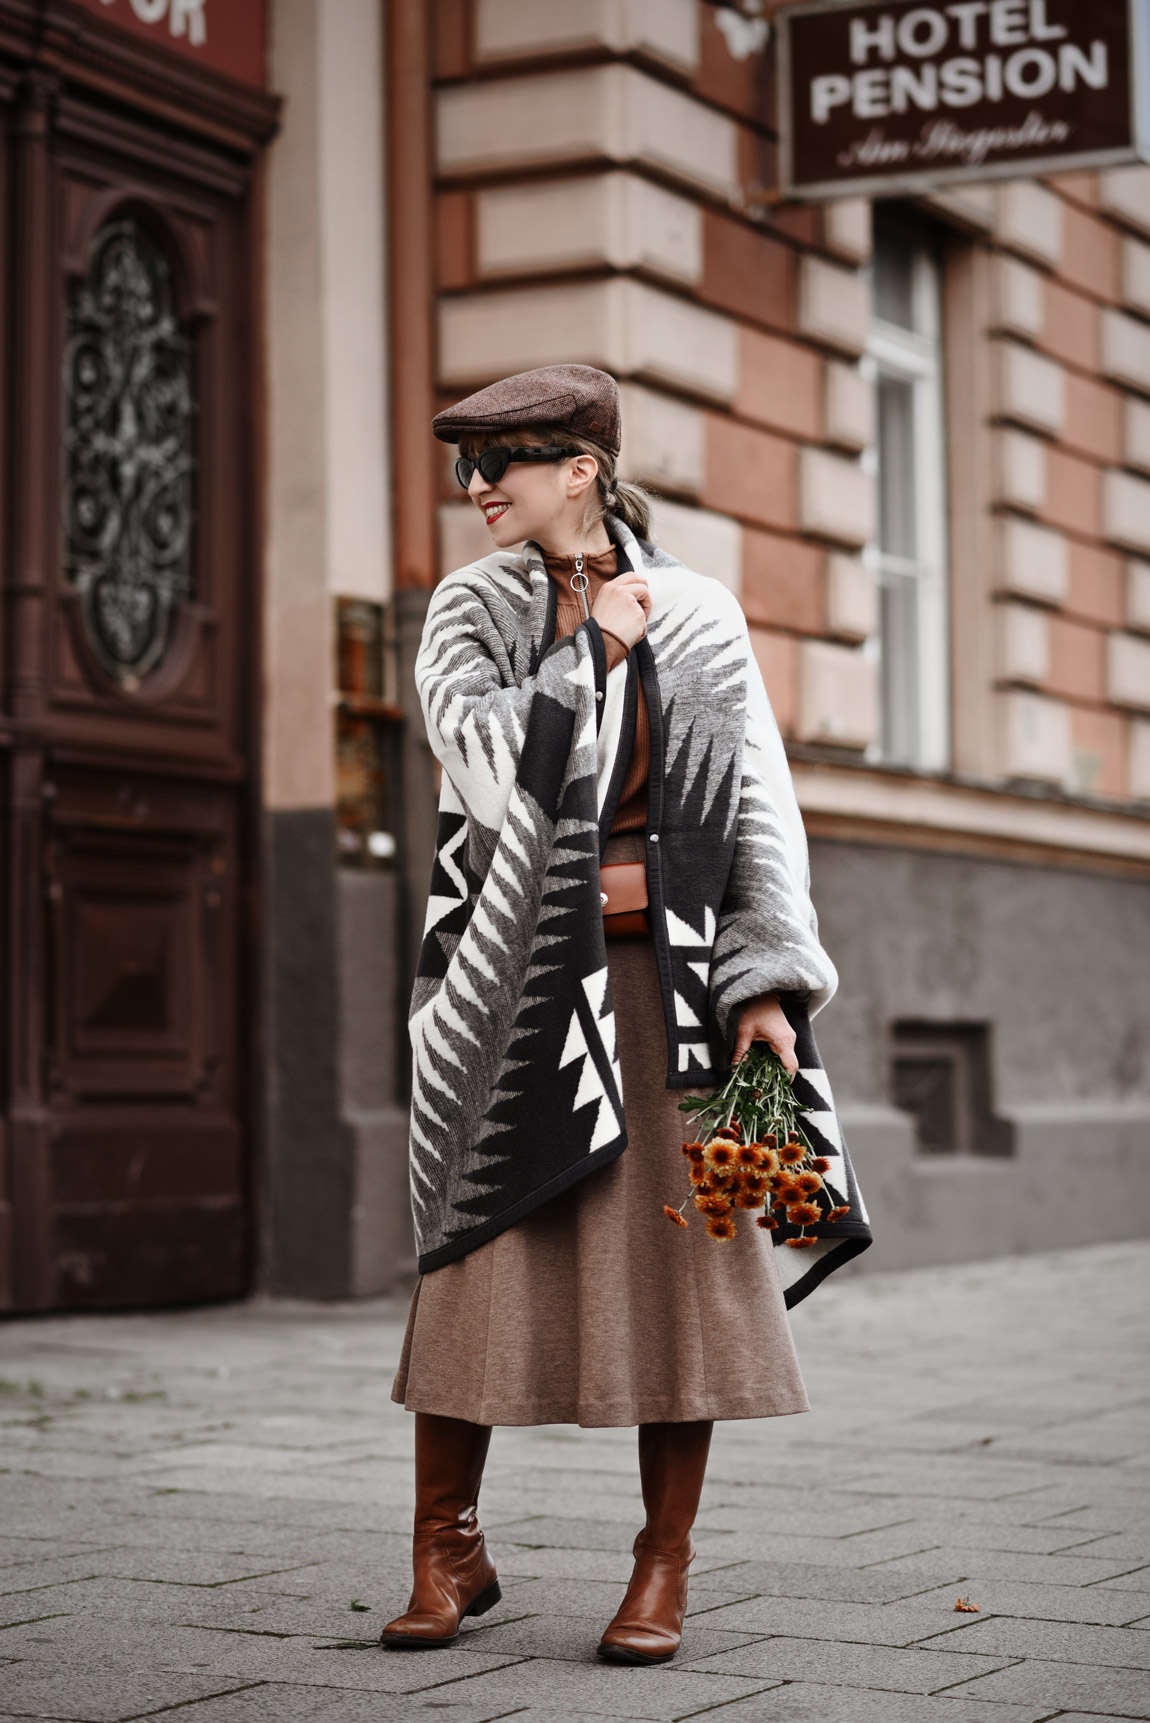 cape, decke, dralon, meetdralon, outfit, münchen, modeblogger, fashionblogger, streetstyle, fall, herbst, bloggerstyle, camel, braun